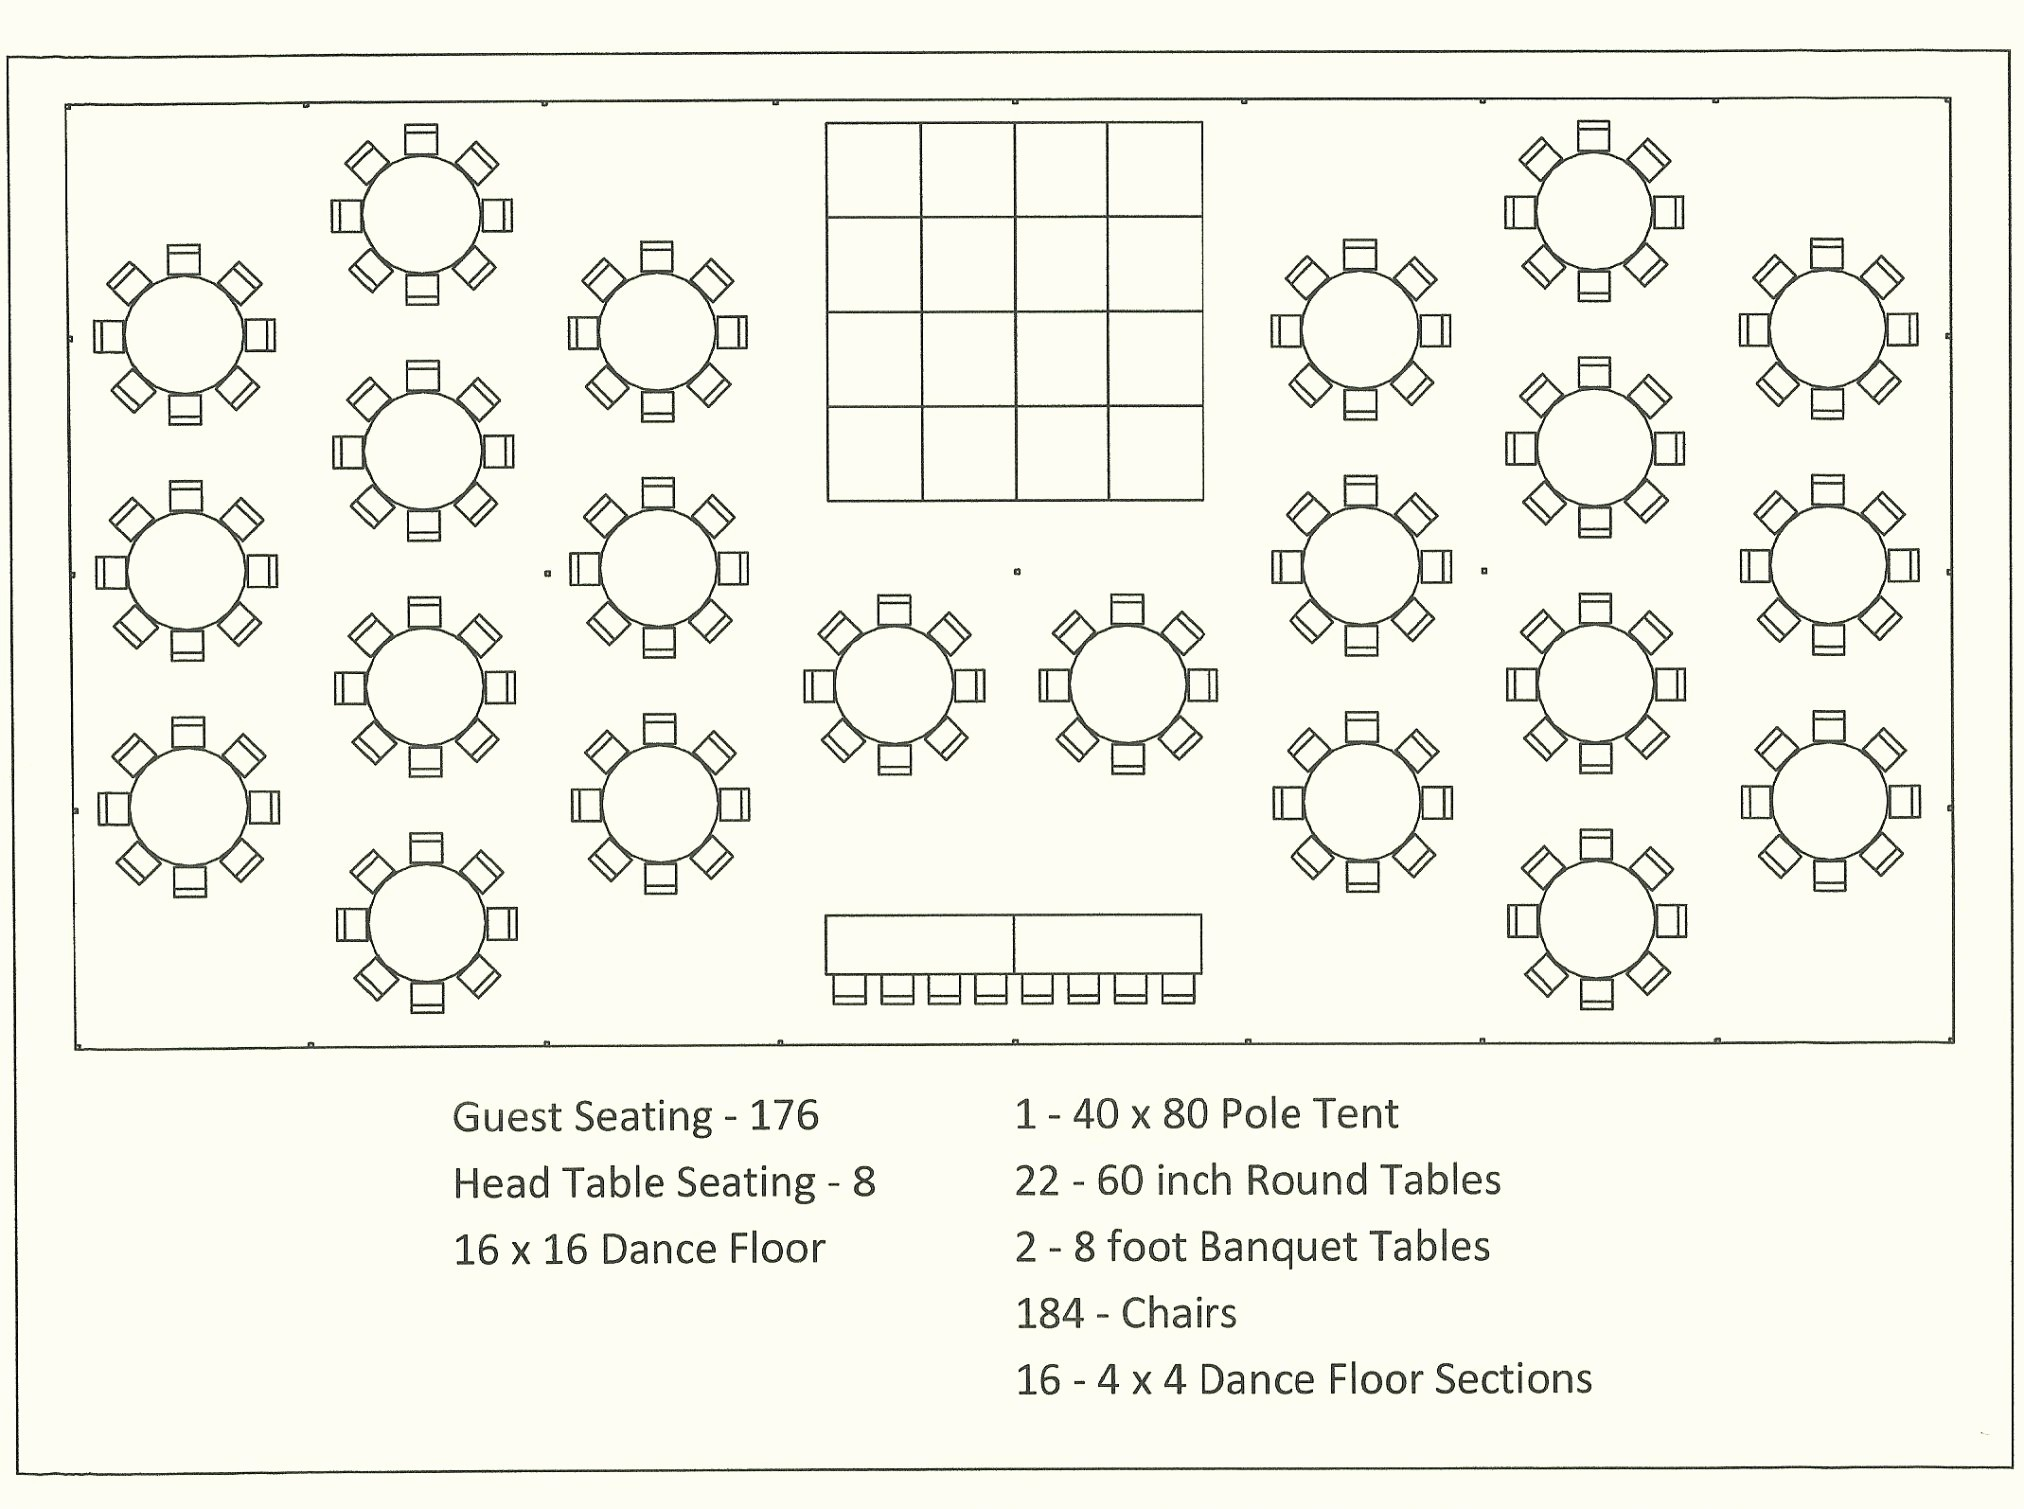 Wedding Table Seating Chart Template Awesome Free Wedding Reception Seating Chart Template